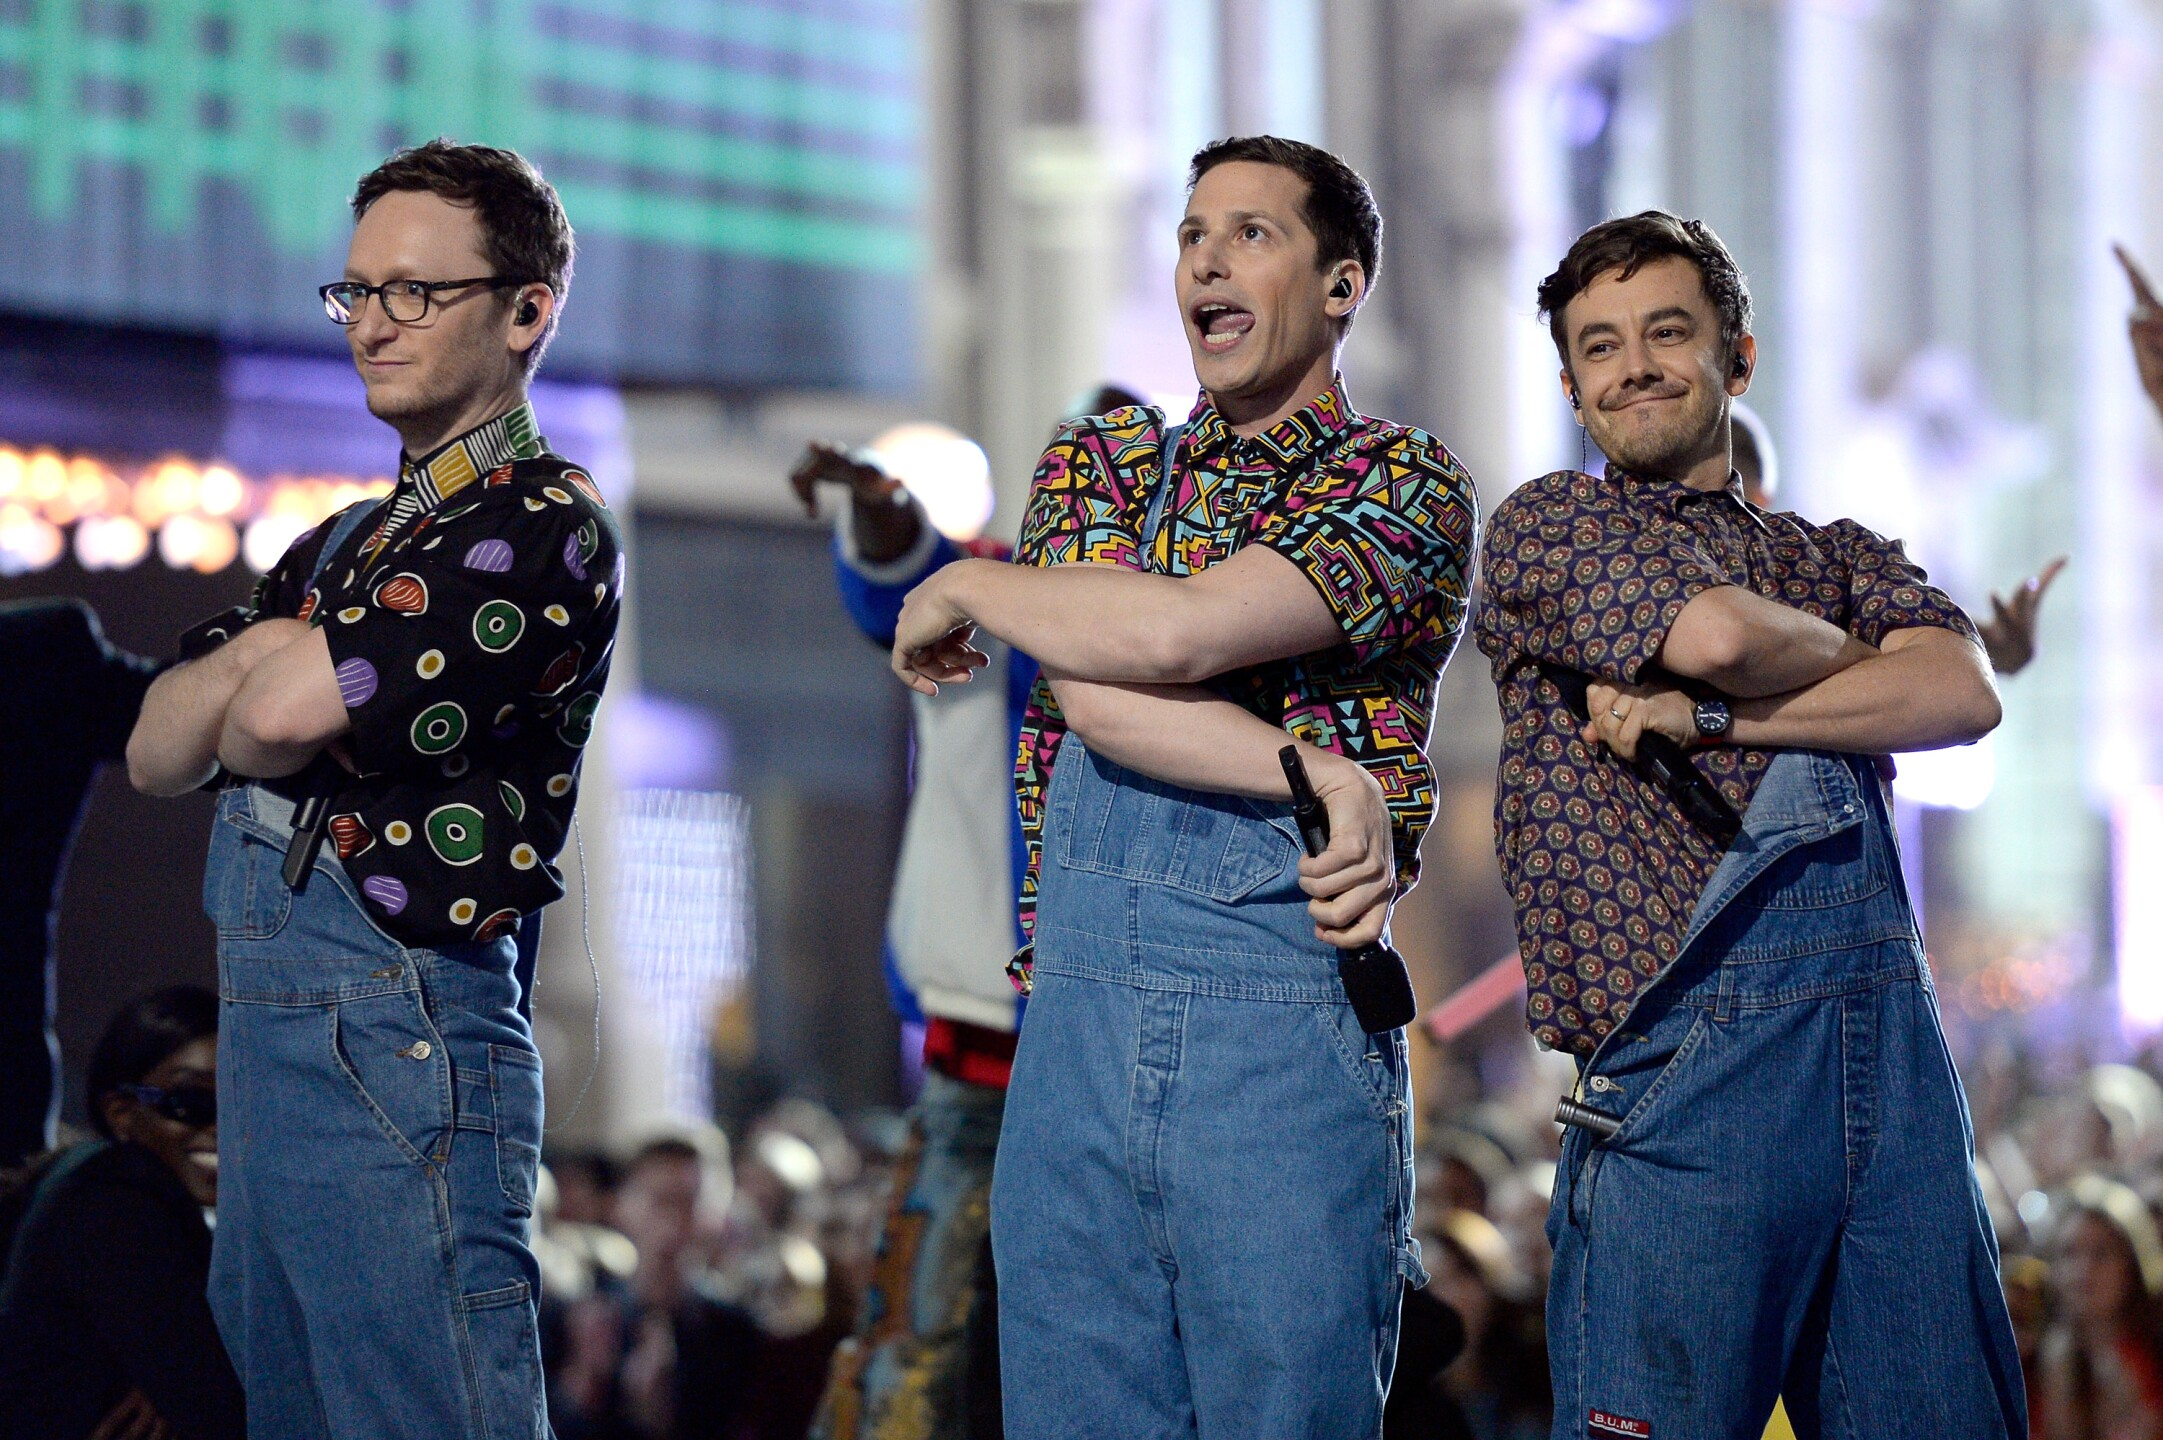 The Lonely Island will perform June 28 at Summerfest